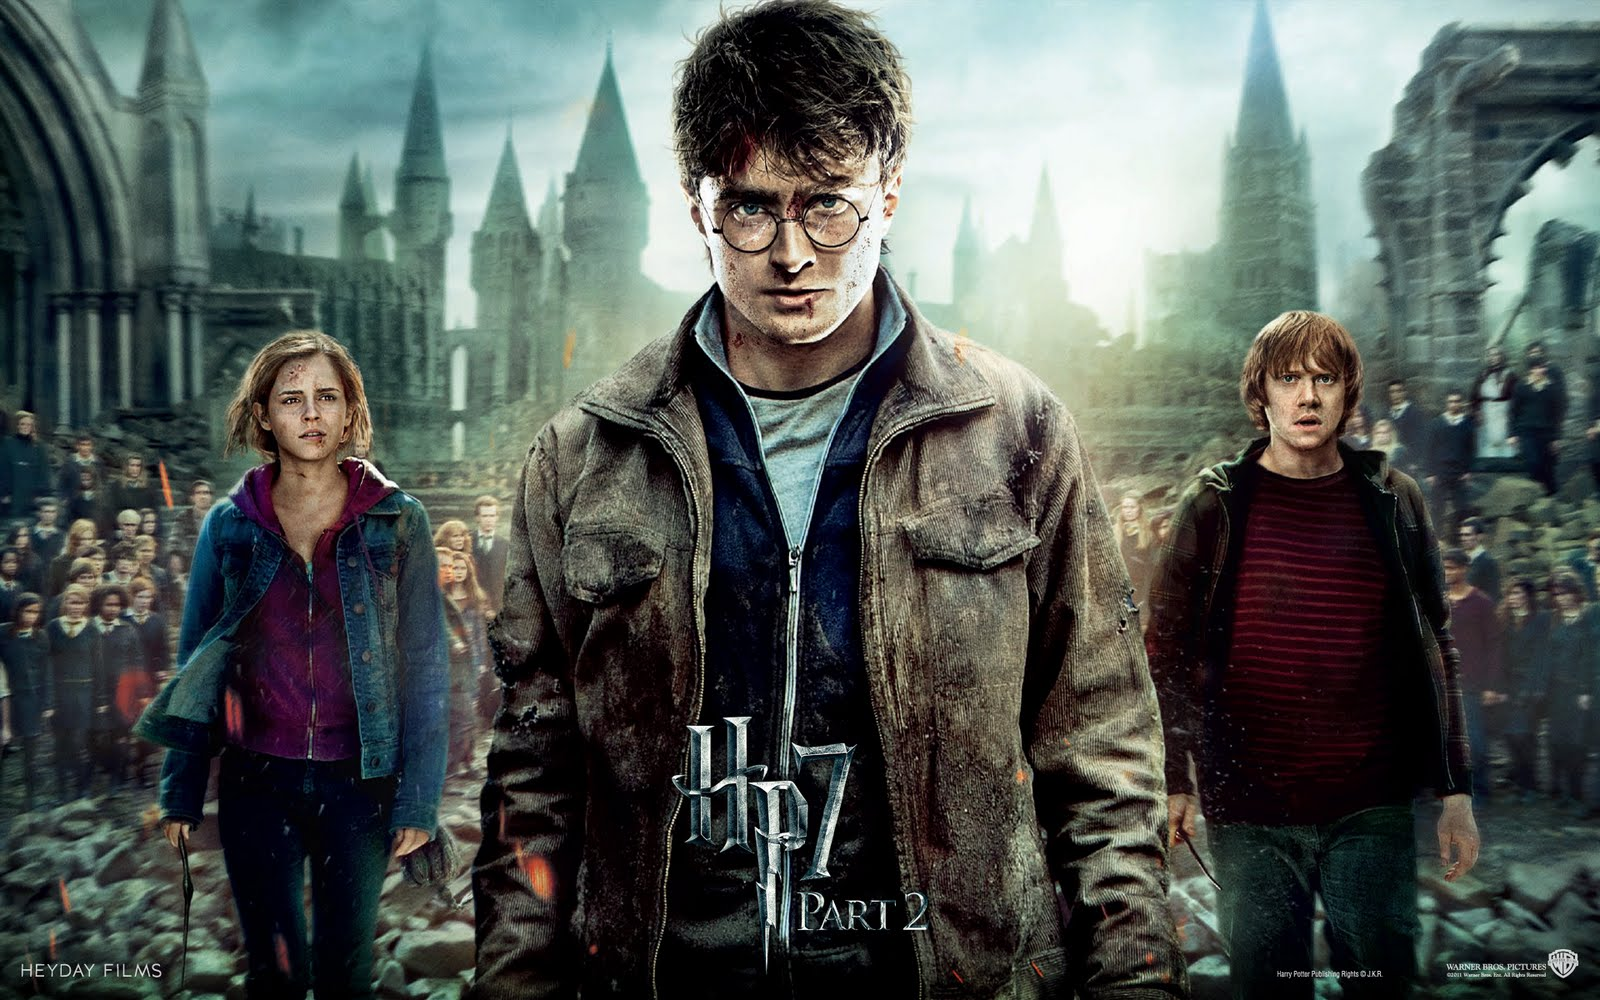 Ppt Garden Download Harry Potter And The Deathly Hallows Part 2